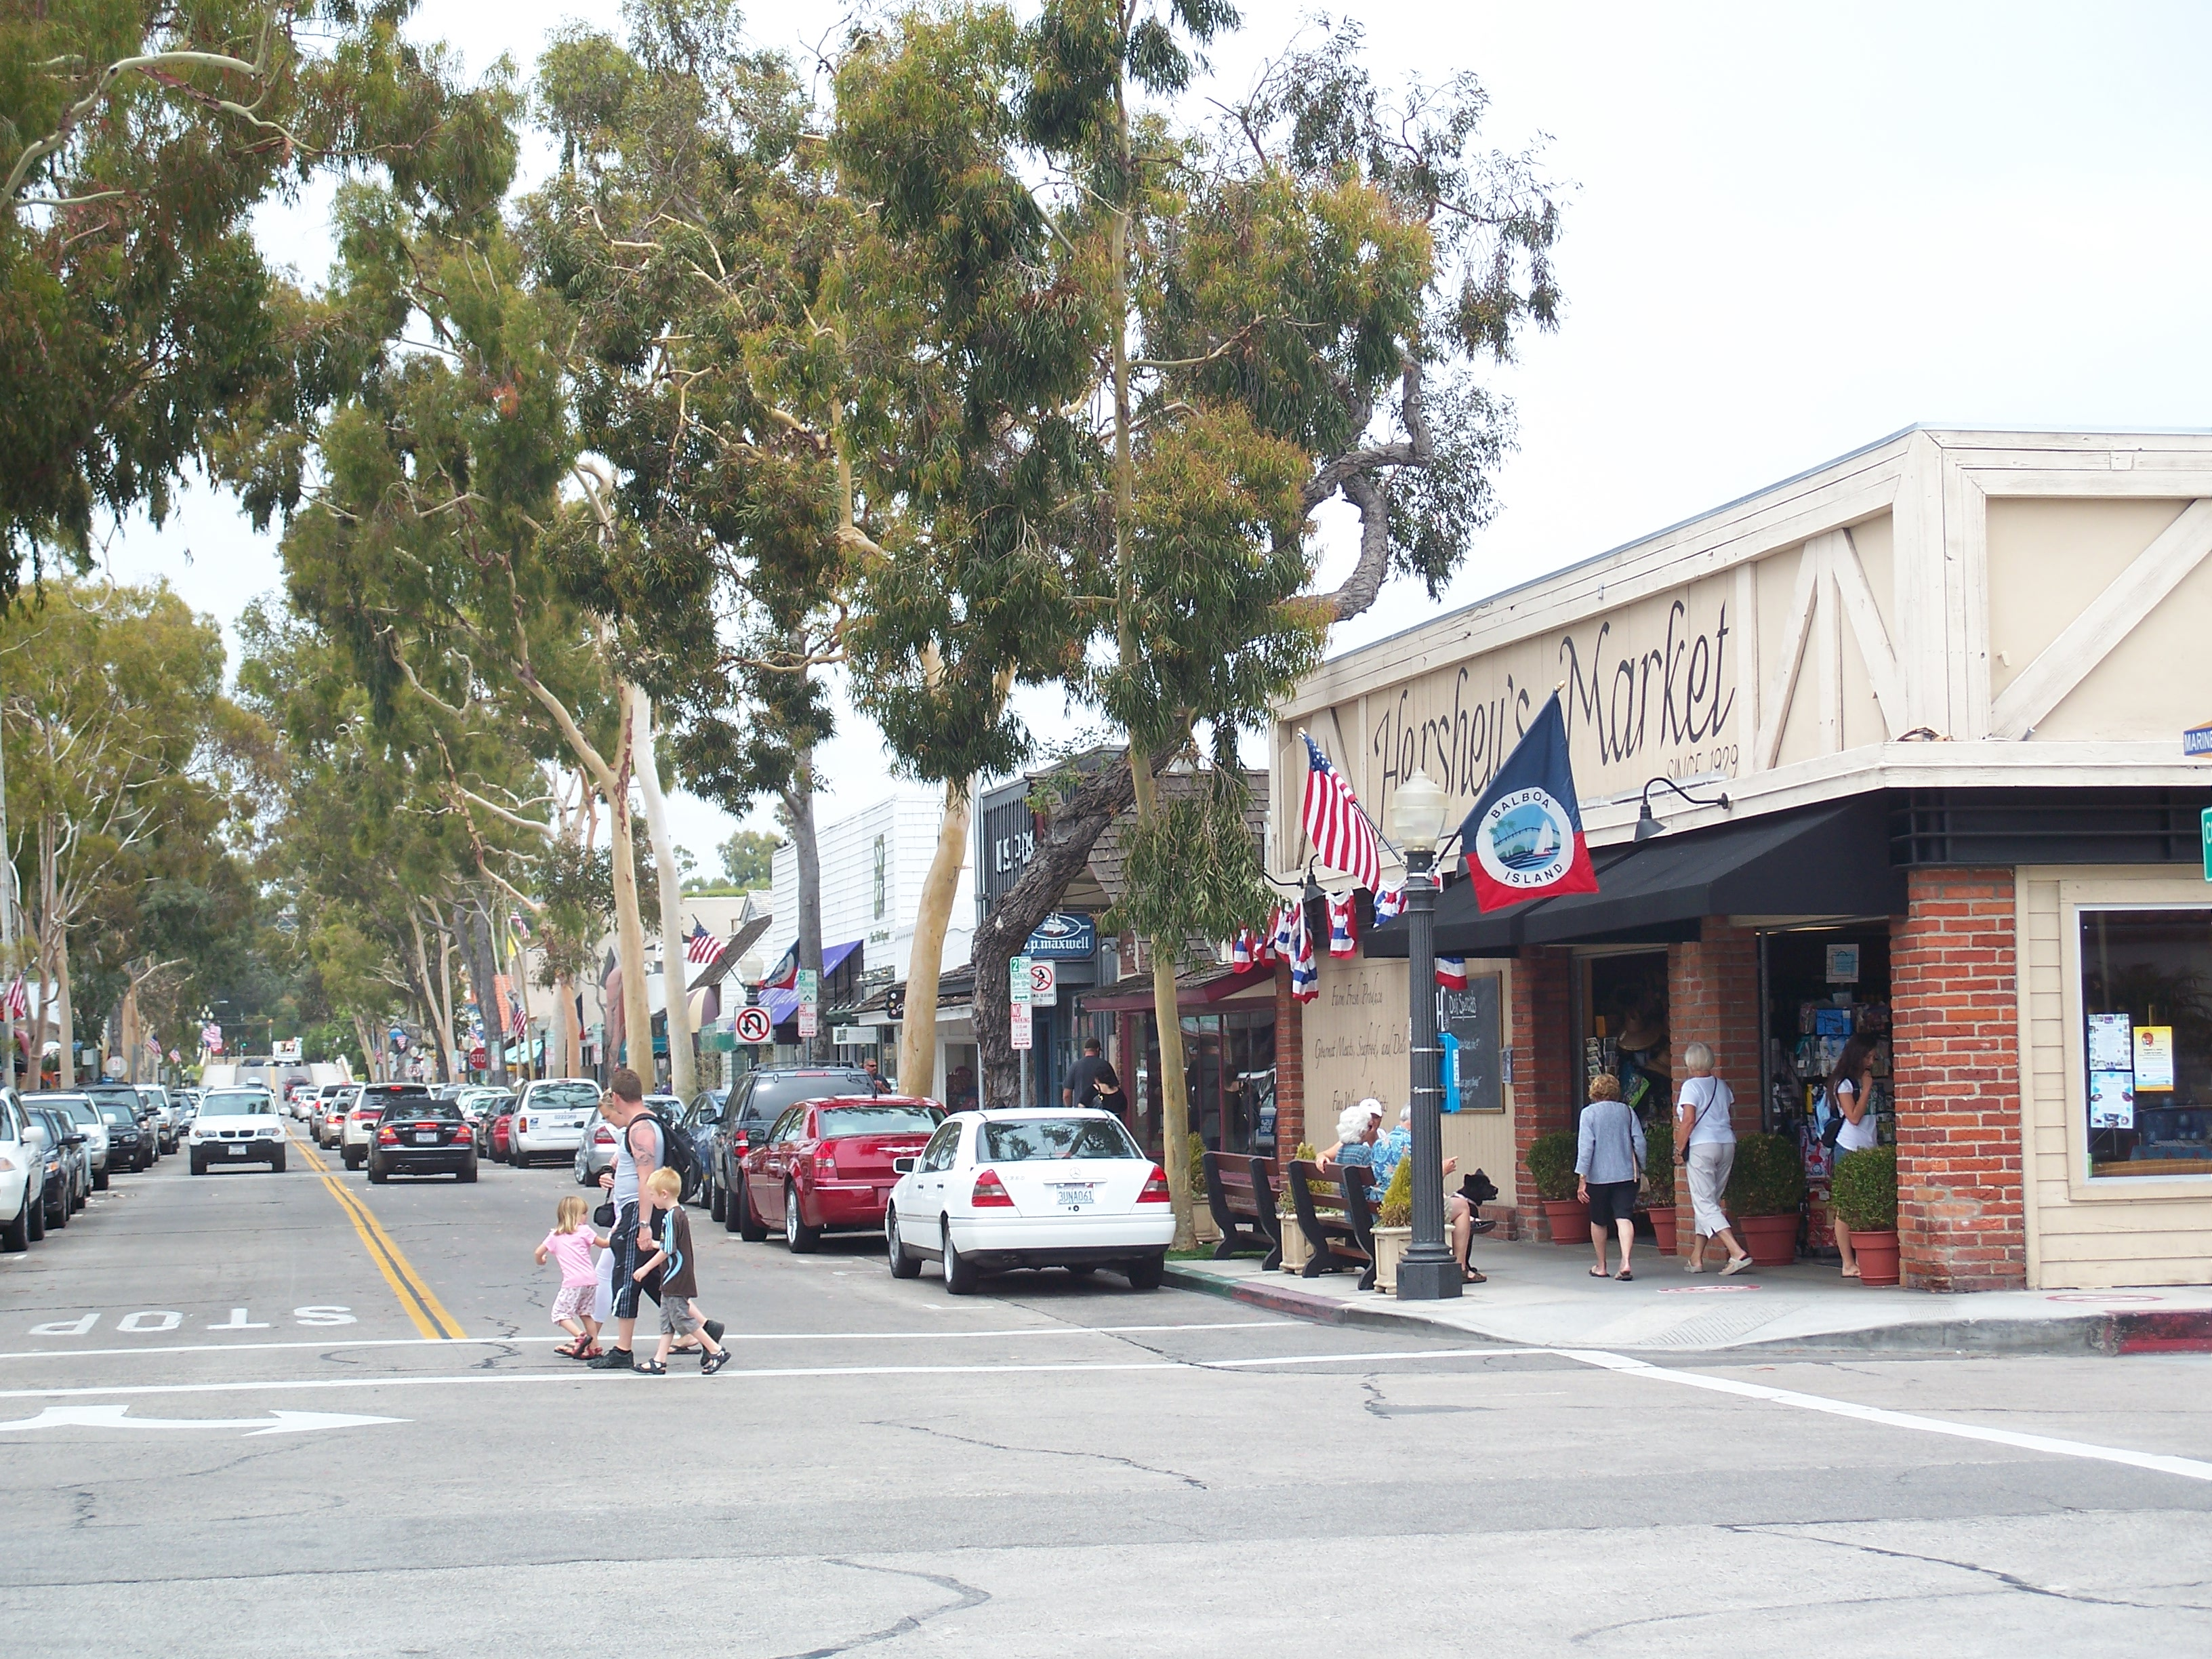 Newport Beach California Its Glamorous History Amp Diverse Offerings Southern California Guide